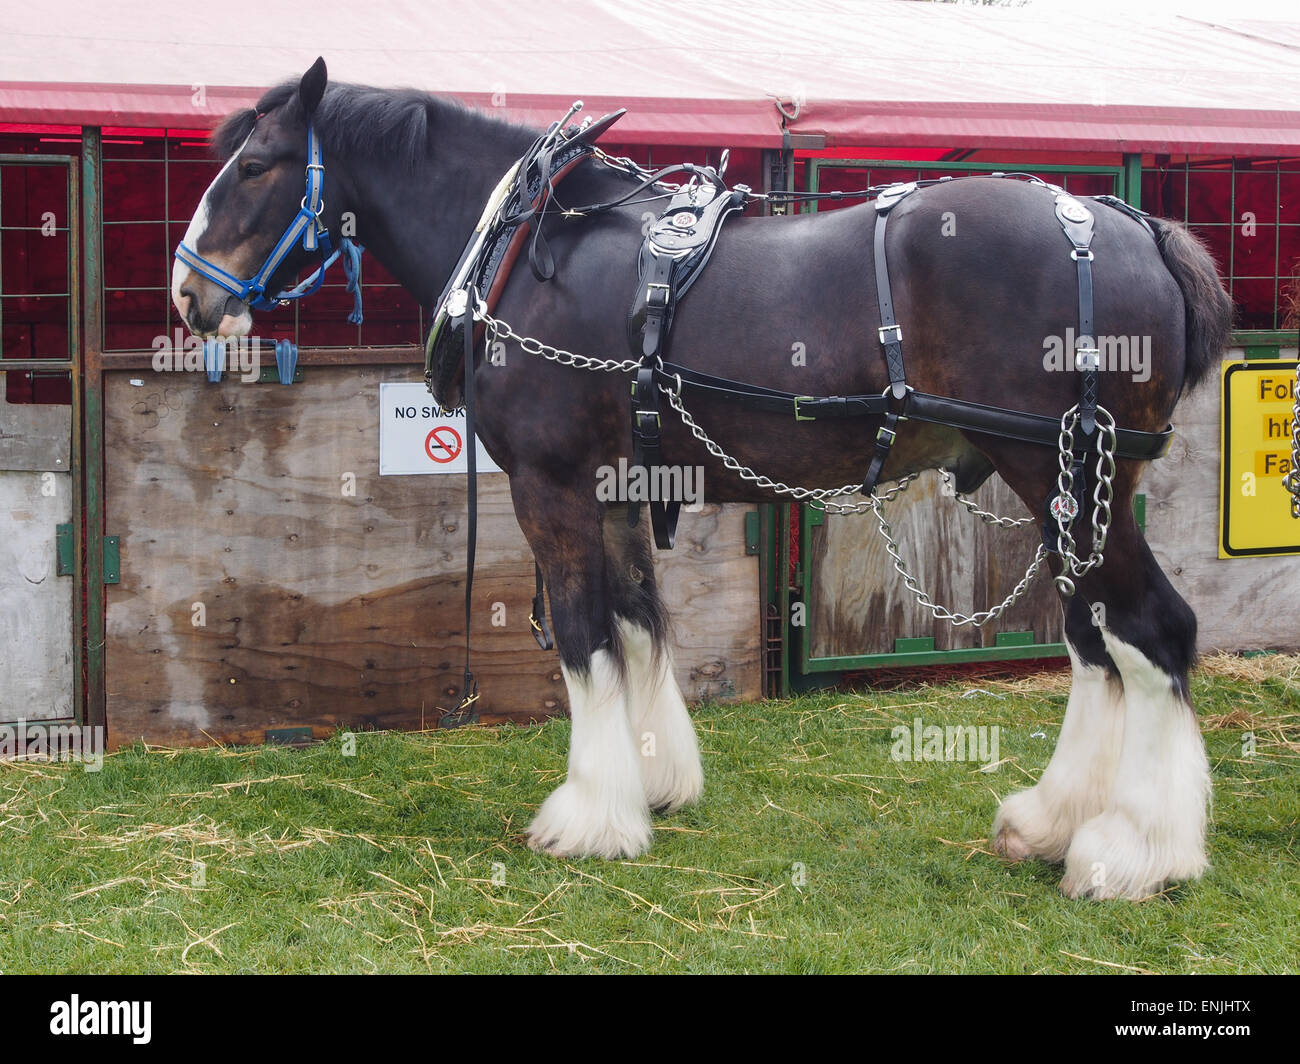 A heavy horse outside temporary stables at a horse show - Stock Image